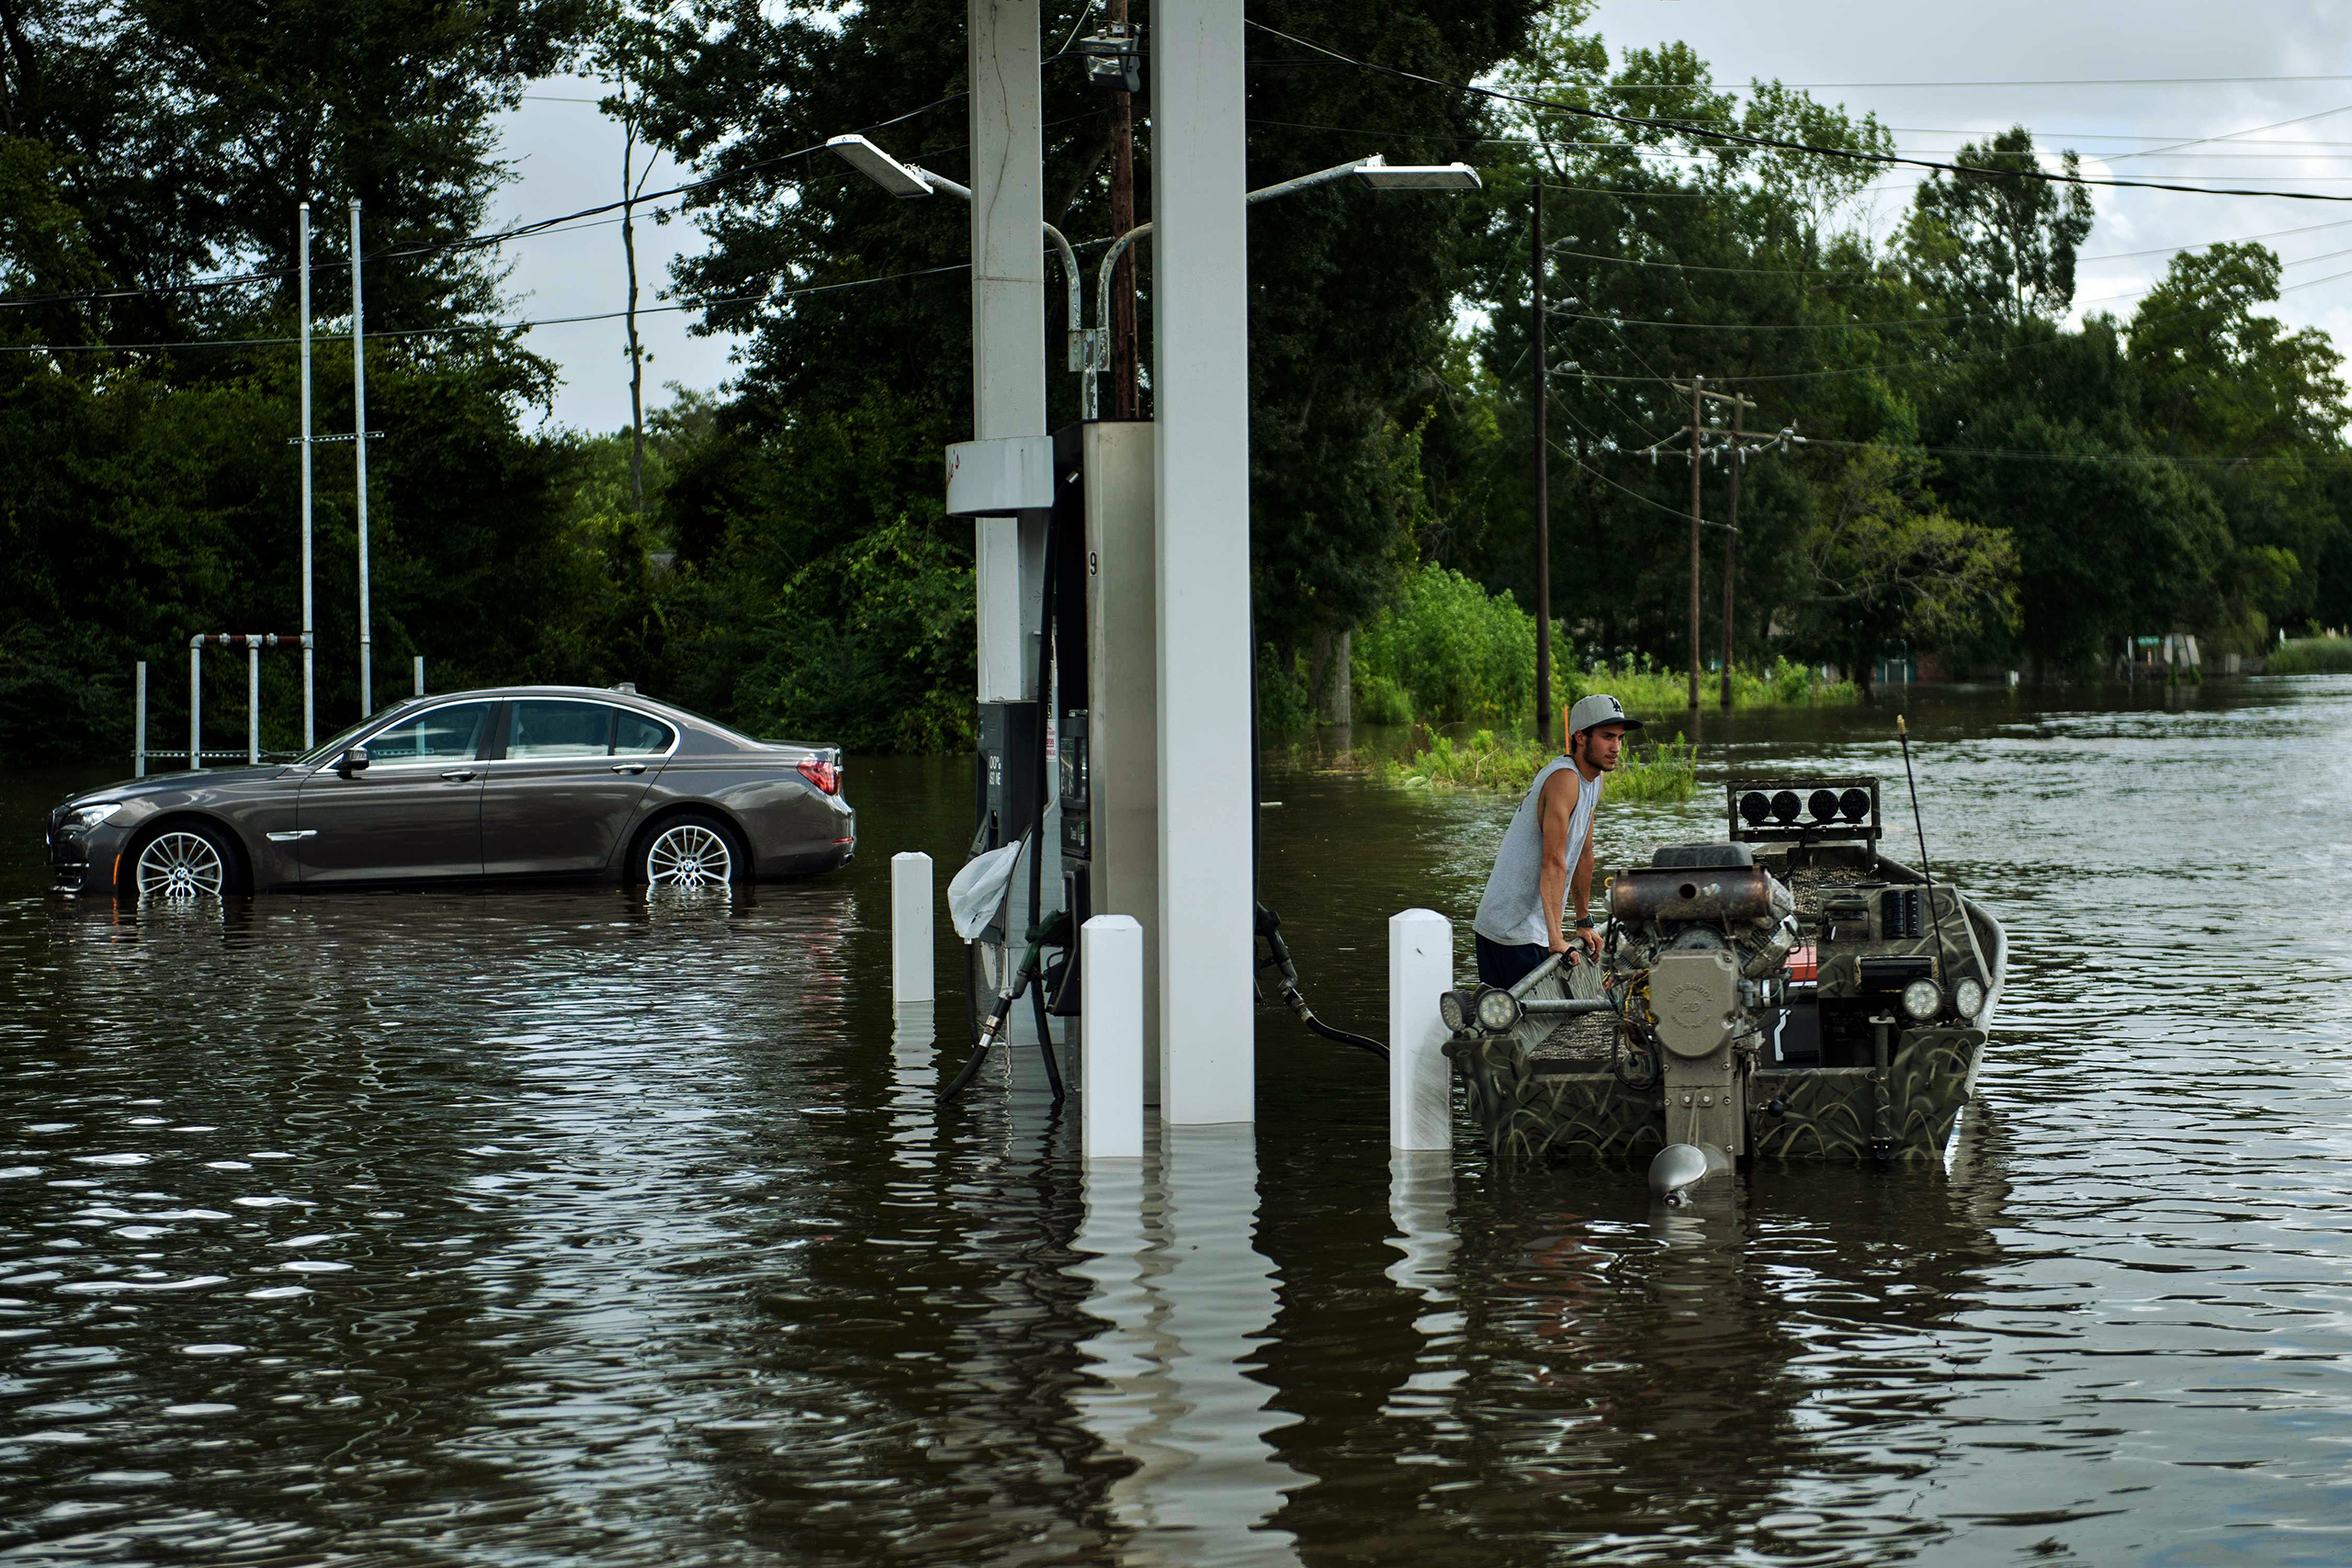 A man waits at a gas station with a boat while helping to evacuate a neighborhood after flooding in Gonzales, La., on Aug. 16, 2016.